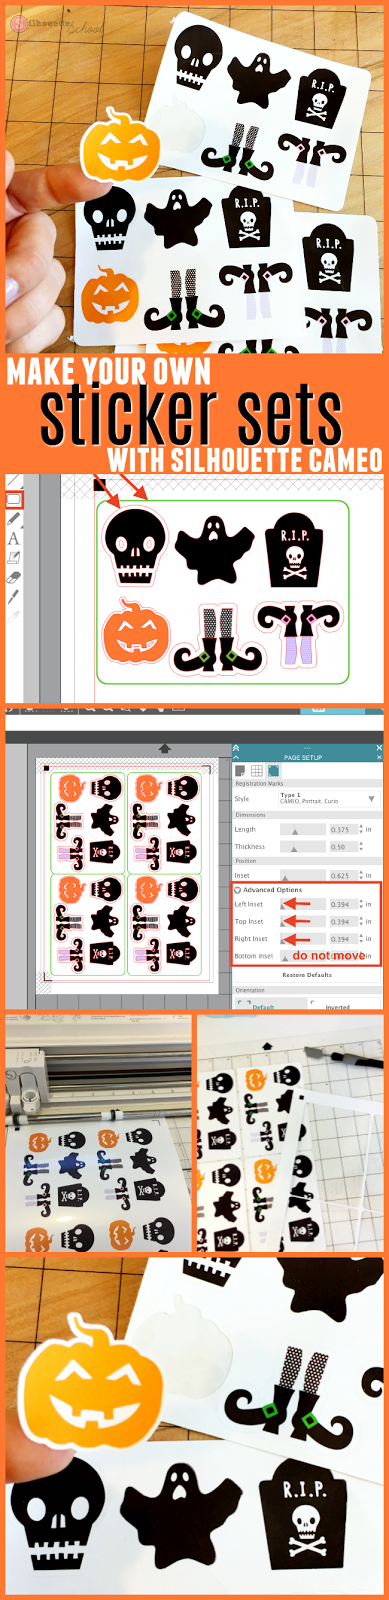 silhouette print and cut, print and cut silhouette, silhouette cameo print and cut, print and cut silhouette cameo, silhouette blog, silhouette tutorials, silhouette sticker tutorials, print and cut files for Silhouette, print cut machine,